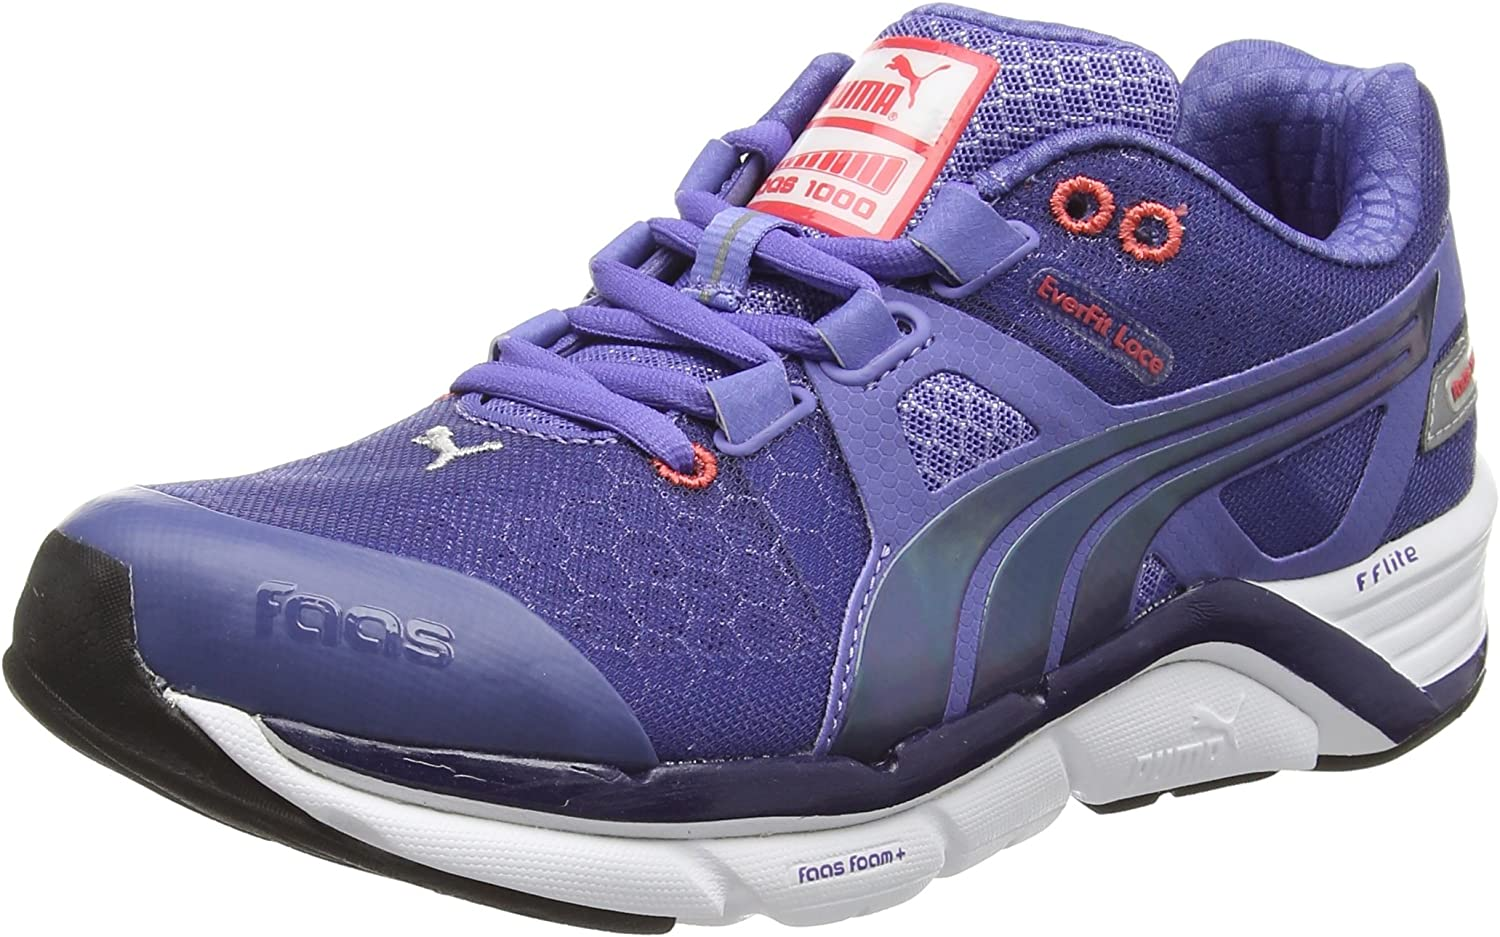 PUMA FAAS 1000 V1.5 Women s Running Shoes